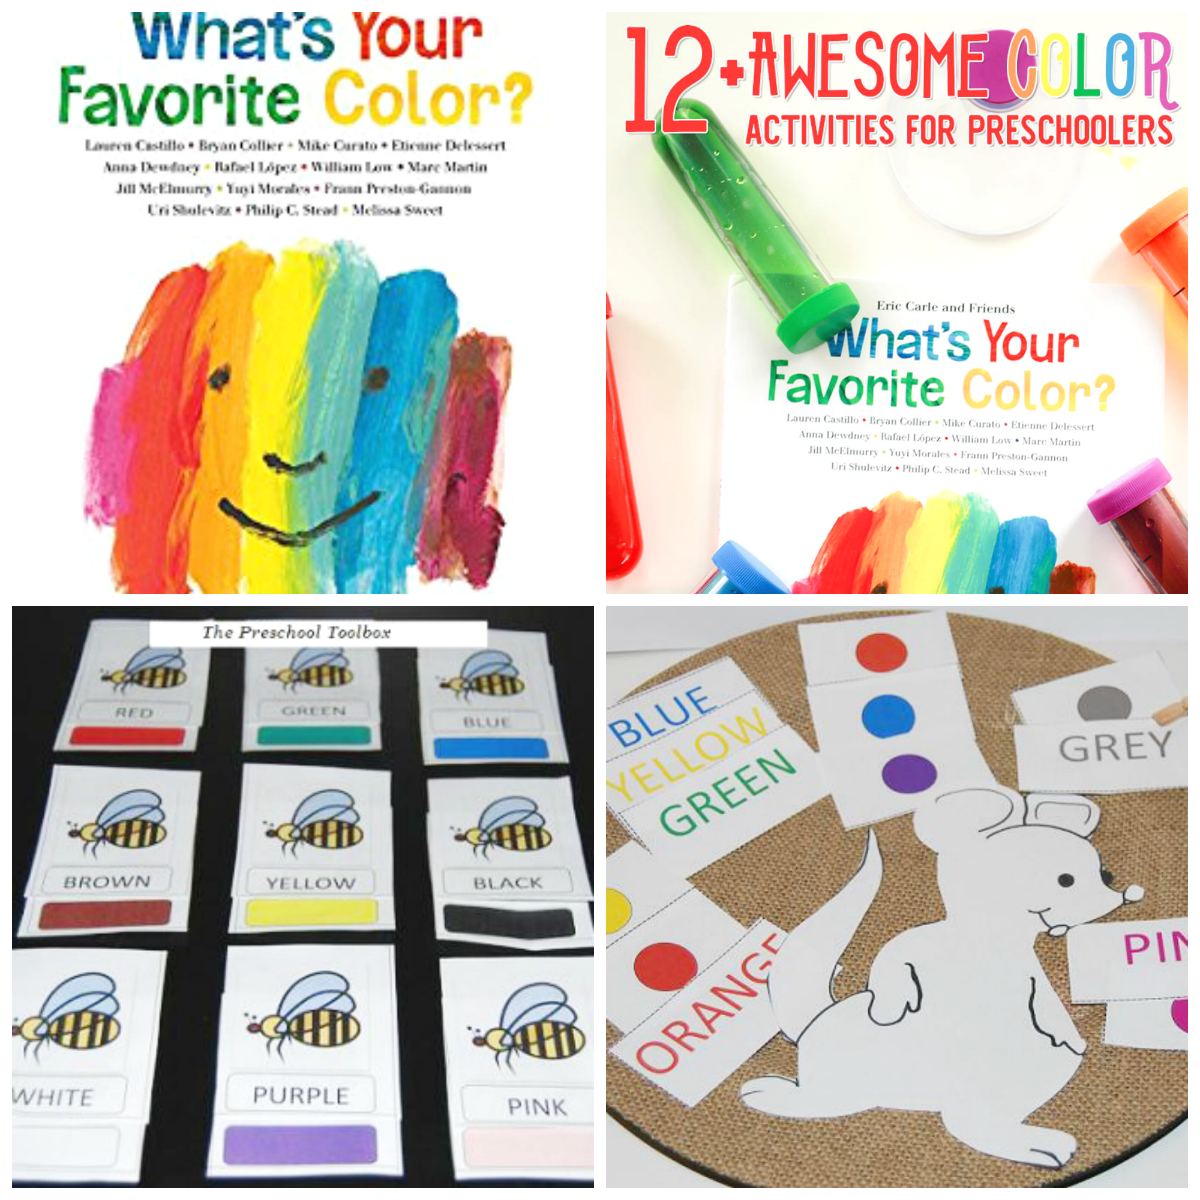 What's Your Favorite Color by Eric Carle - Activities for Preschoolers